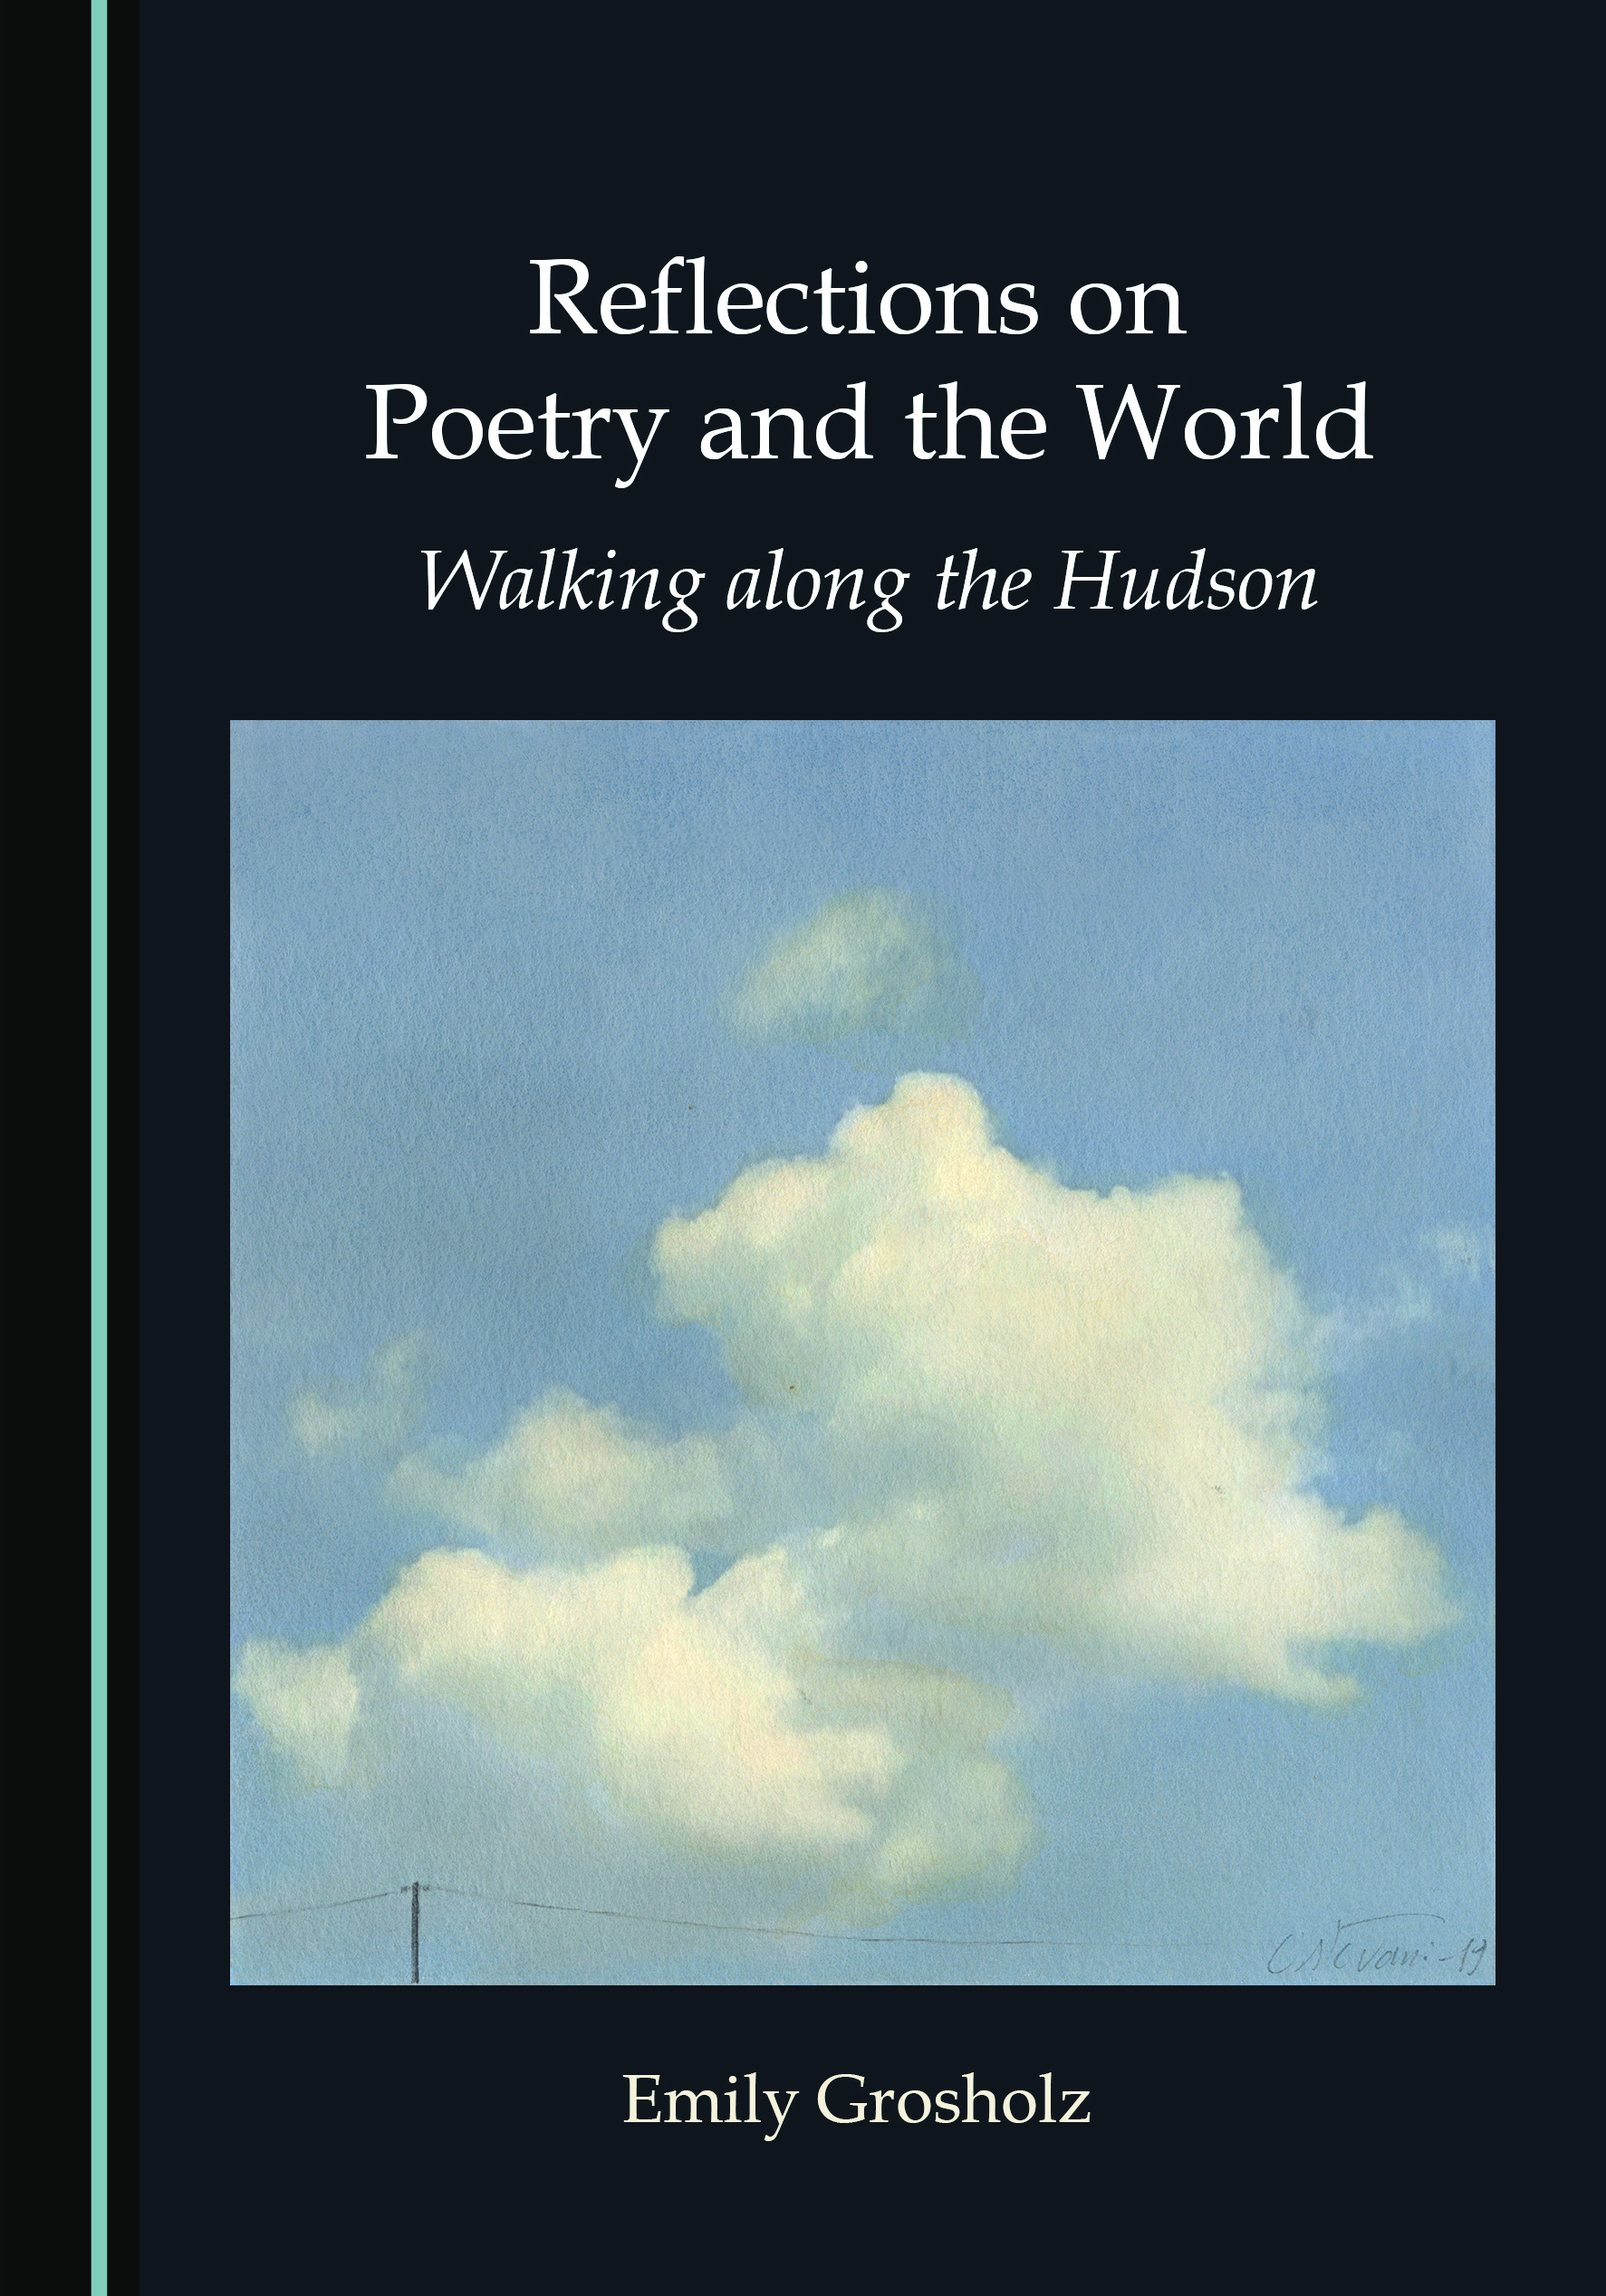 Reflections on Poetry and the World: Walking along the Hudson